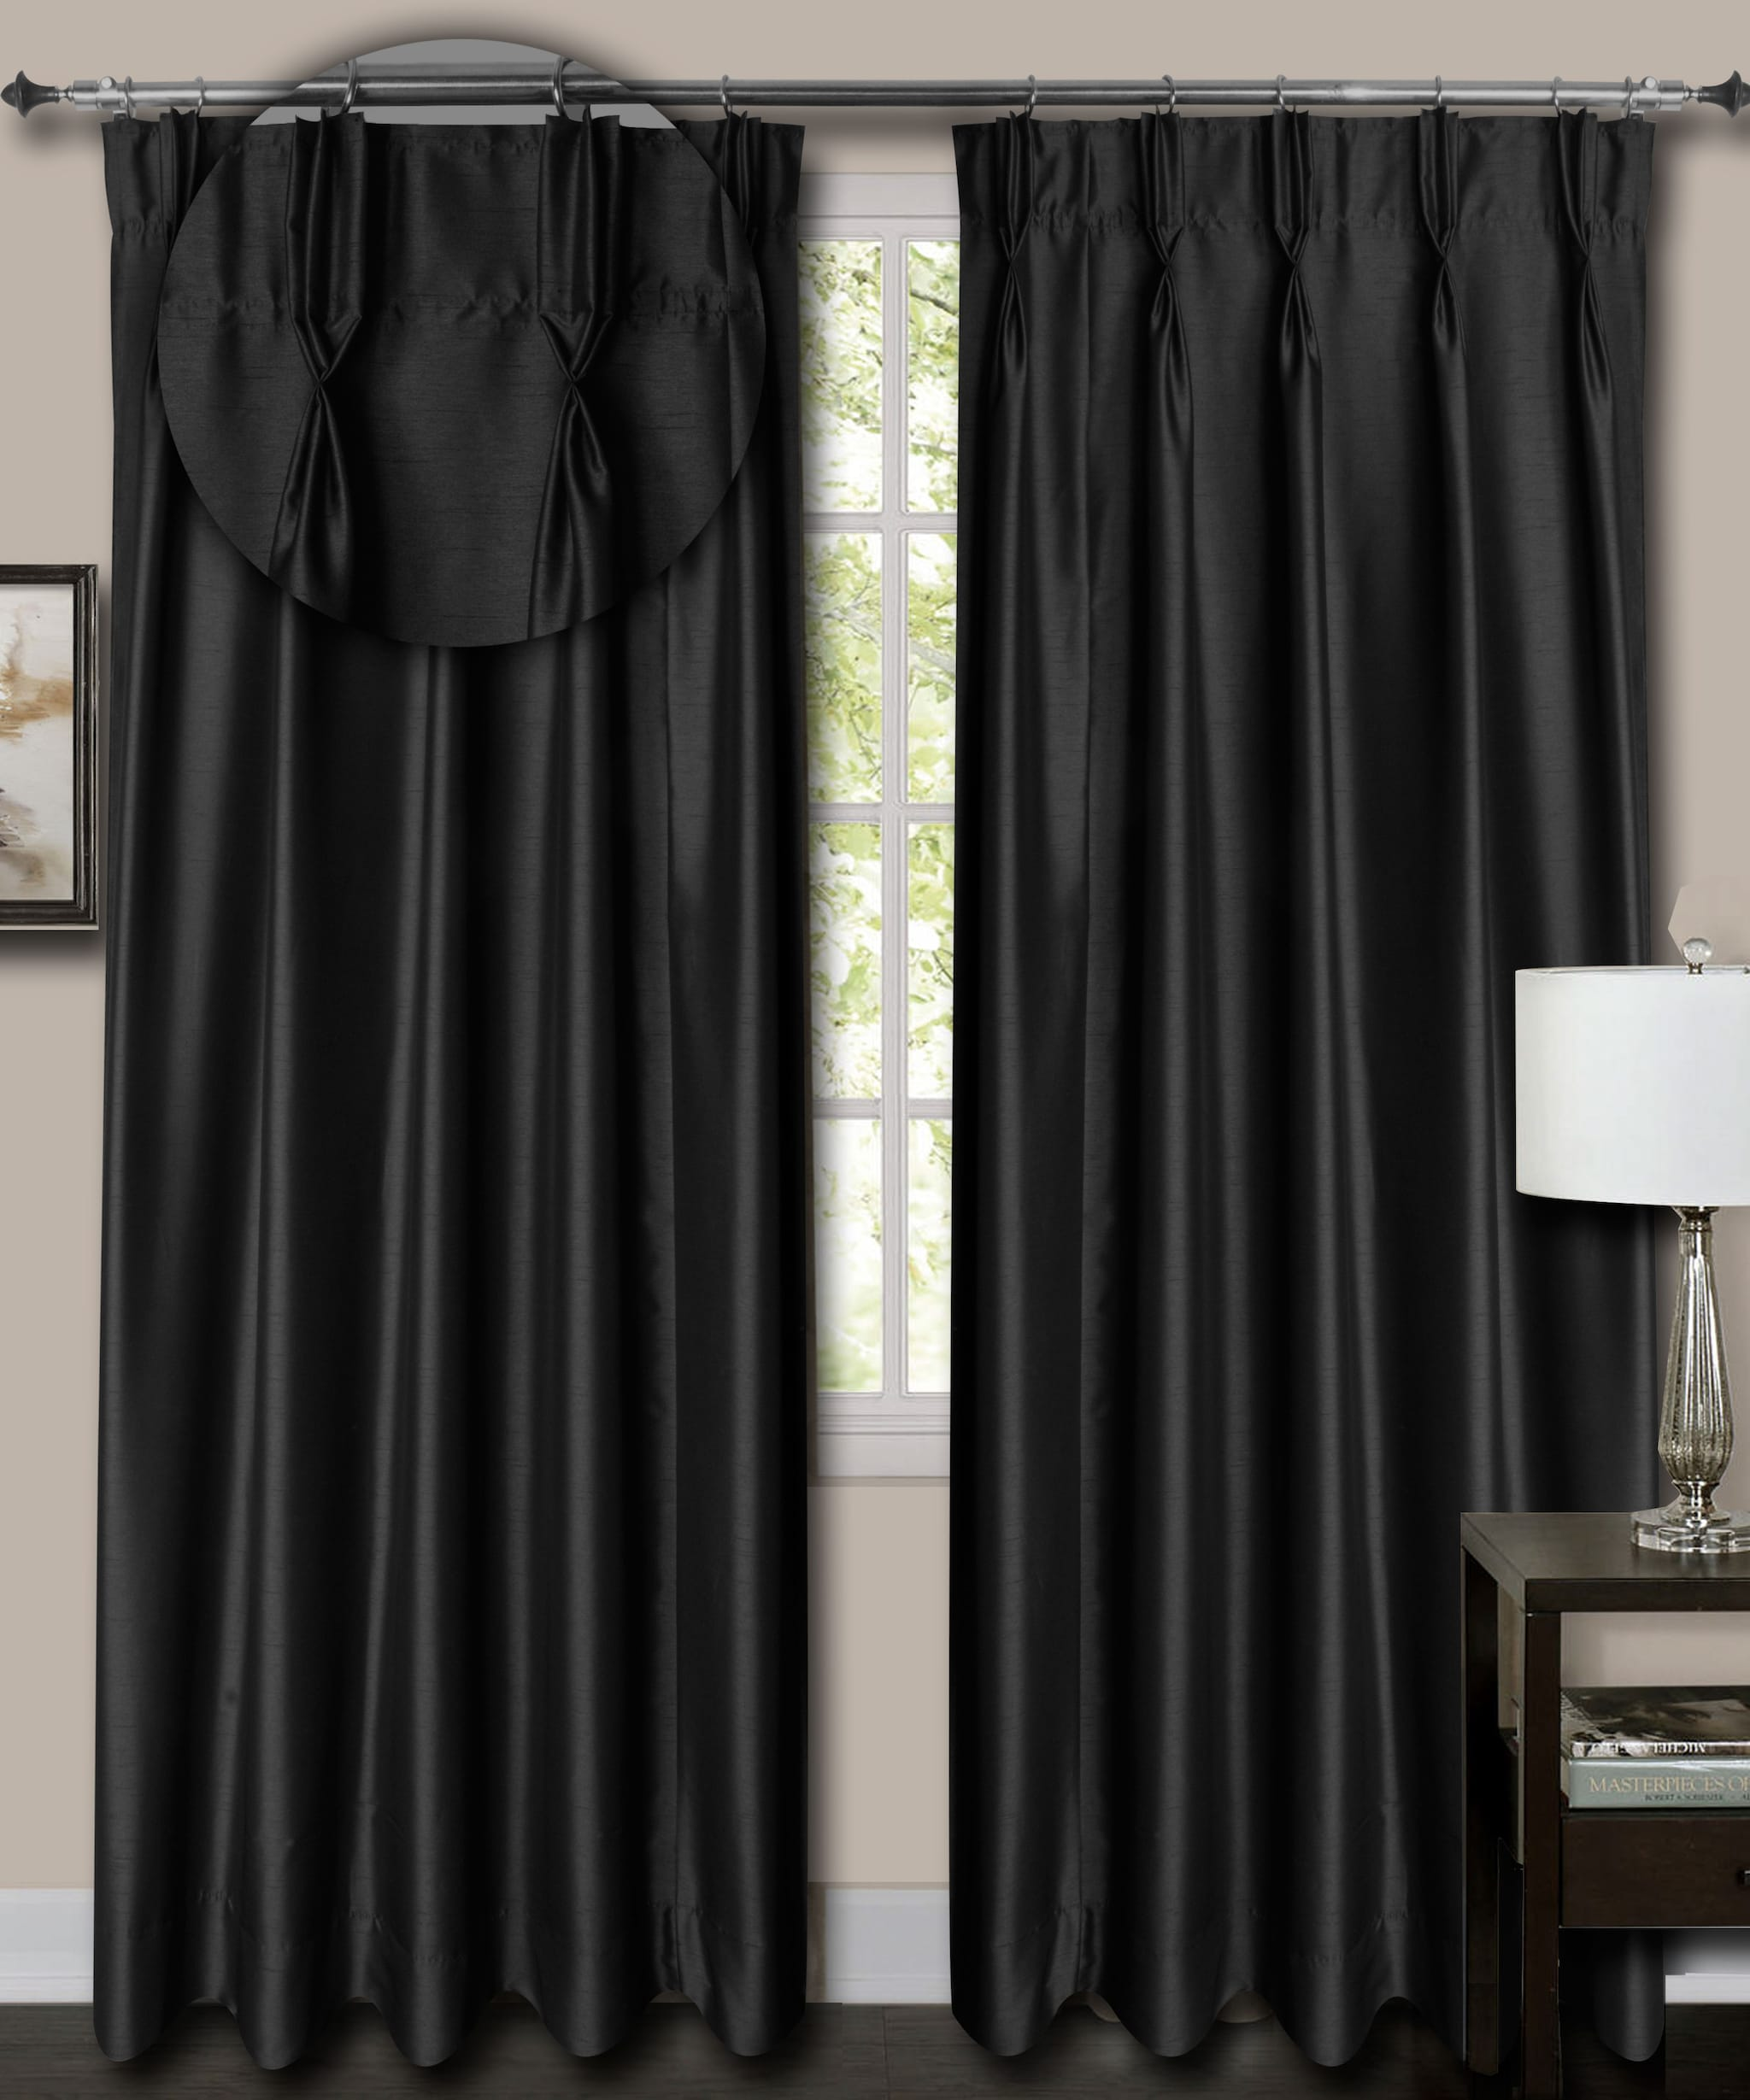 "French Pleat Top Black Faux Silk Dupioni Curtains. (39"" Wide,4 Feet Long,Thick Lining)"